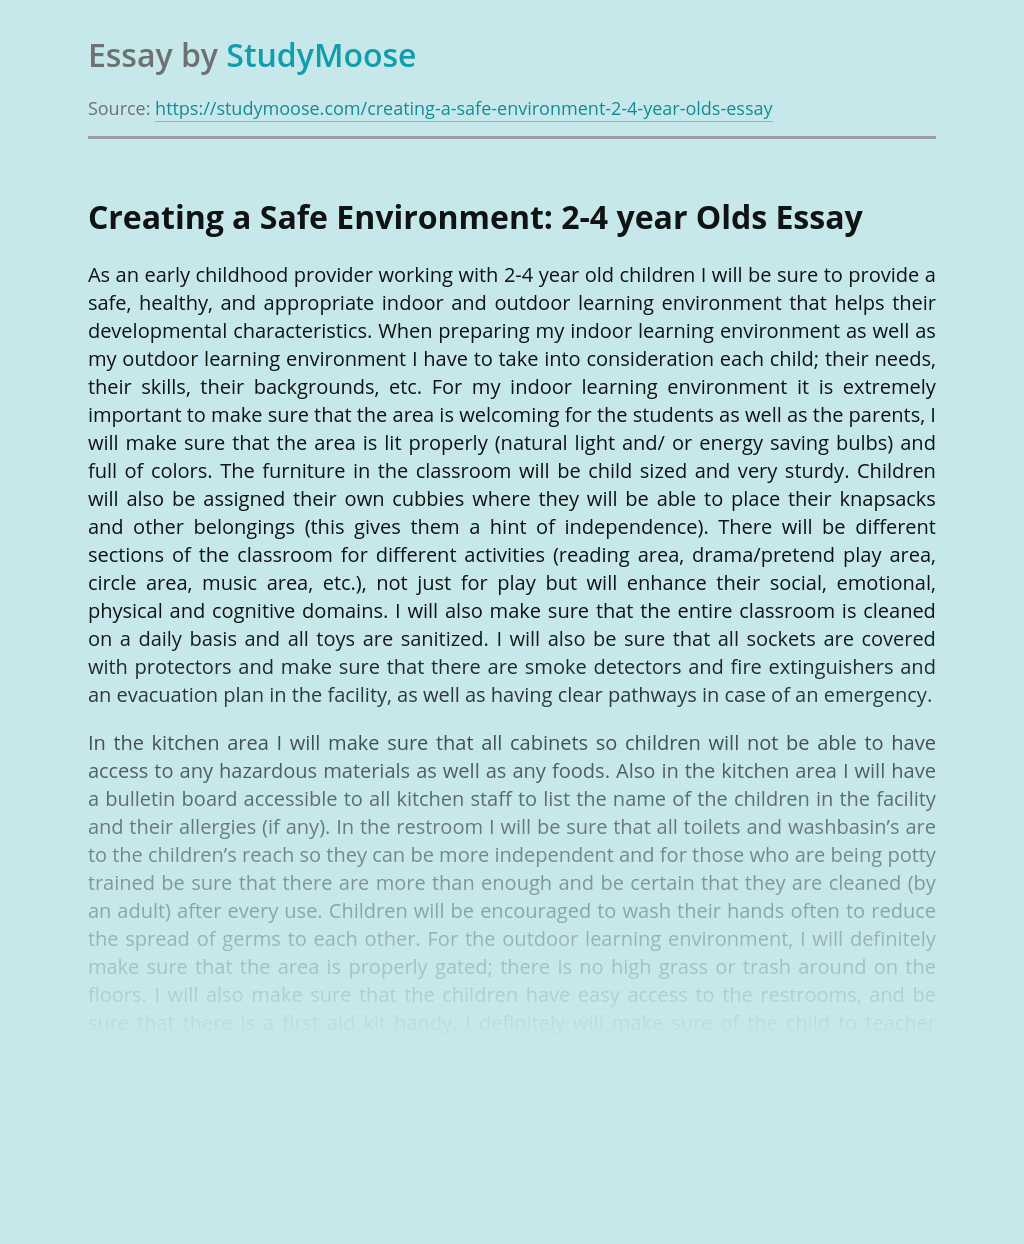 Creating a Safe Environment: 2-4 year Olds